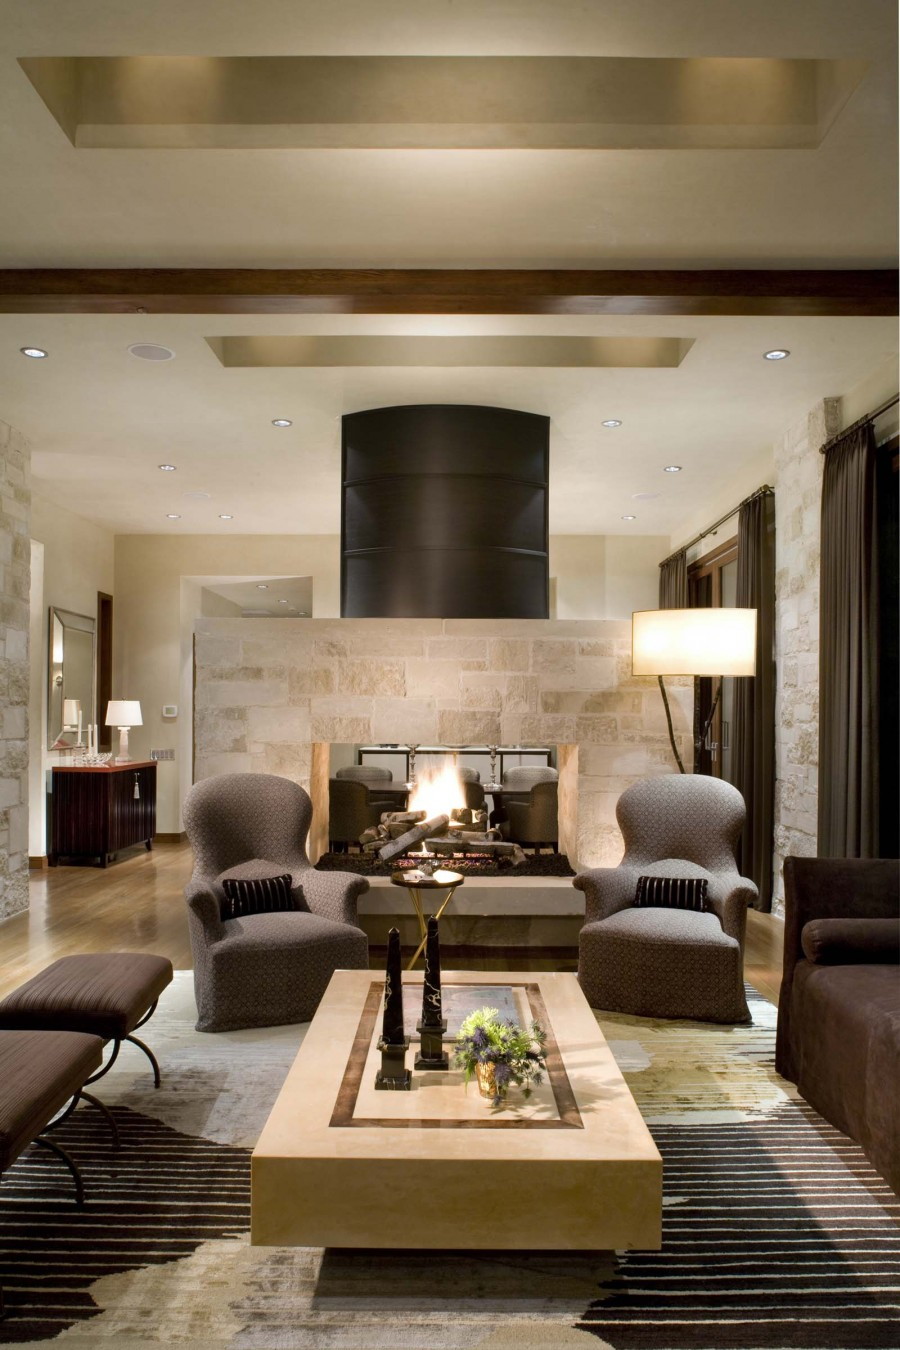 16 fabulous earth tones living room designs decoholic for Living room design ideas with fireplace